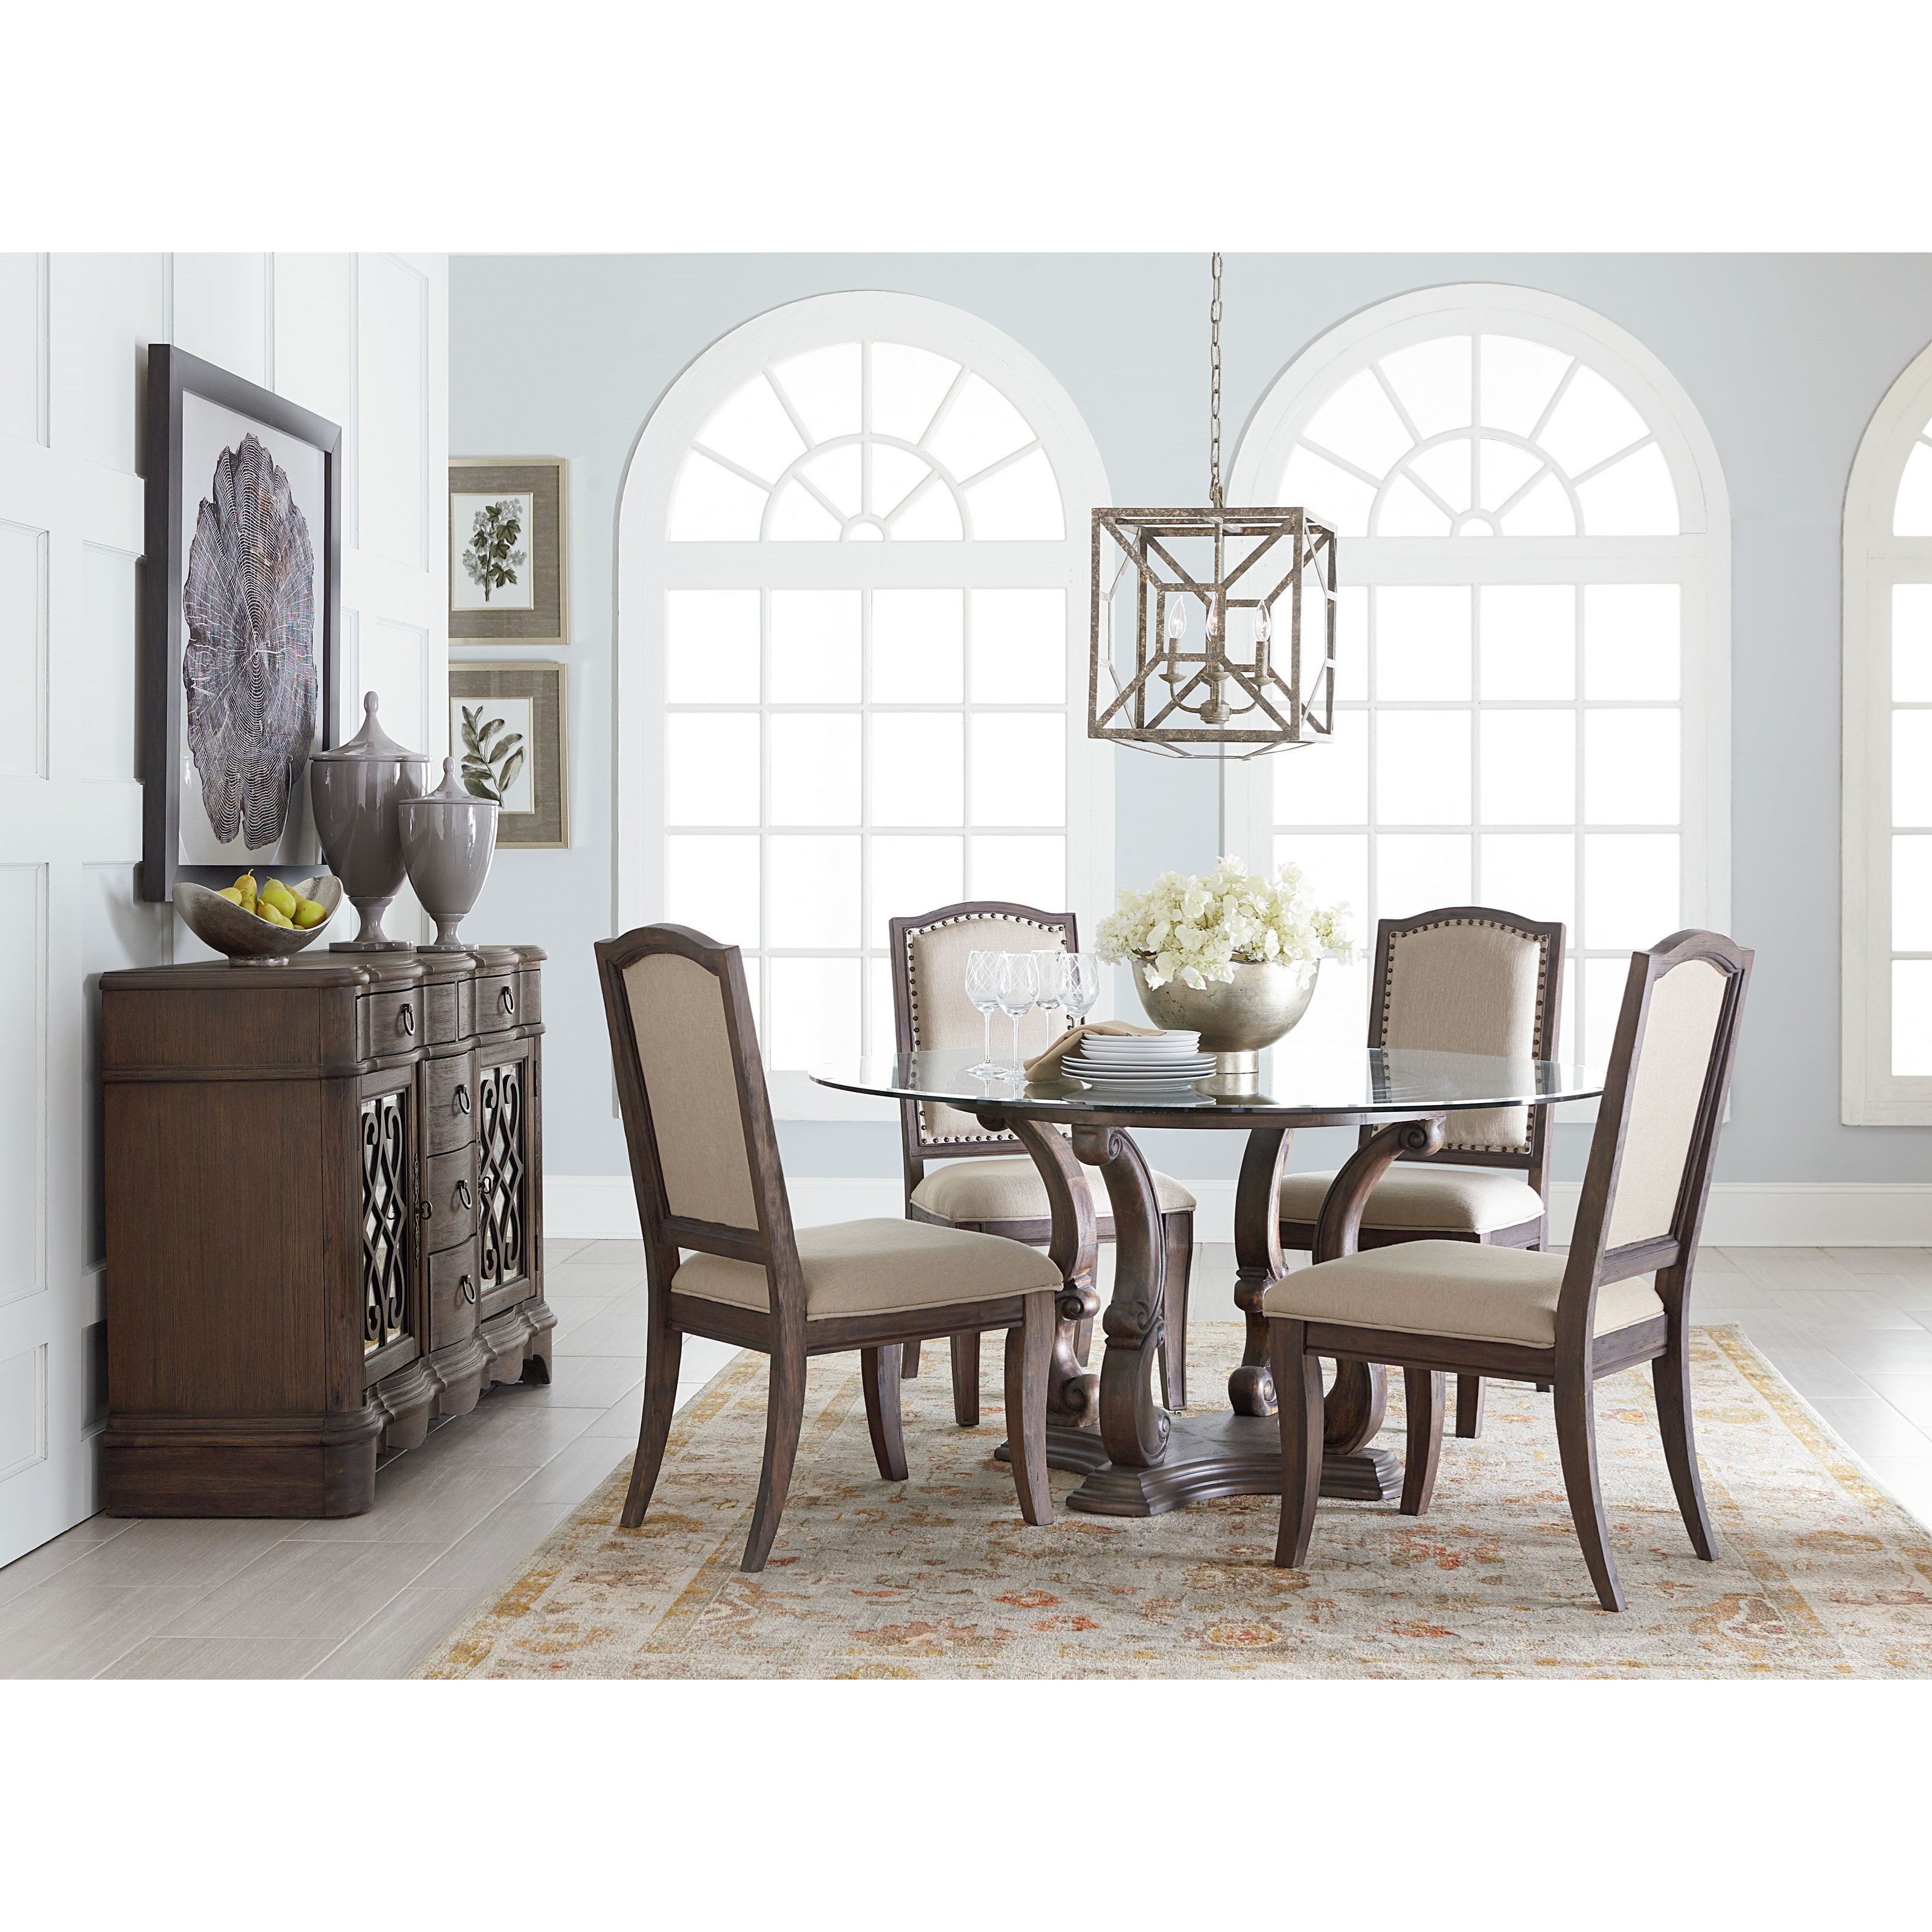 Standard furniture parliament round table dining room for Casual dining room ideas round table